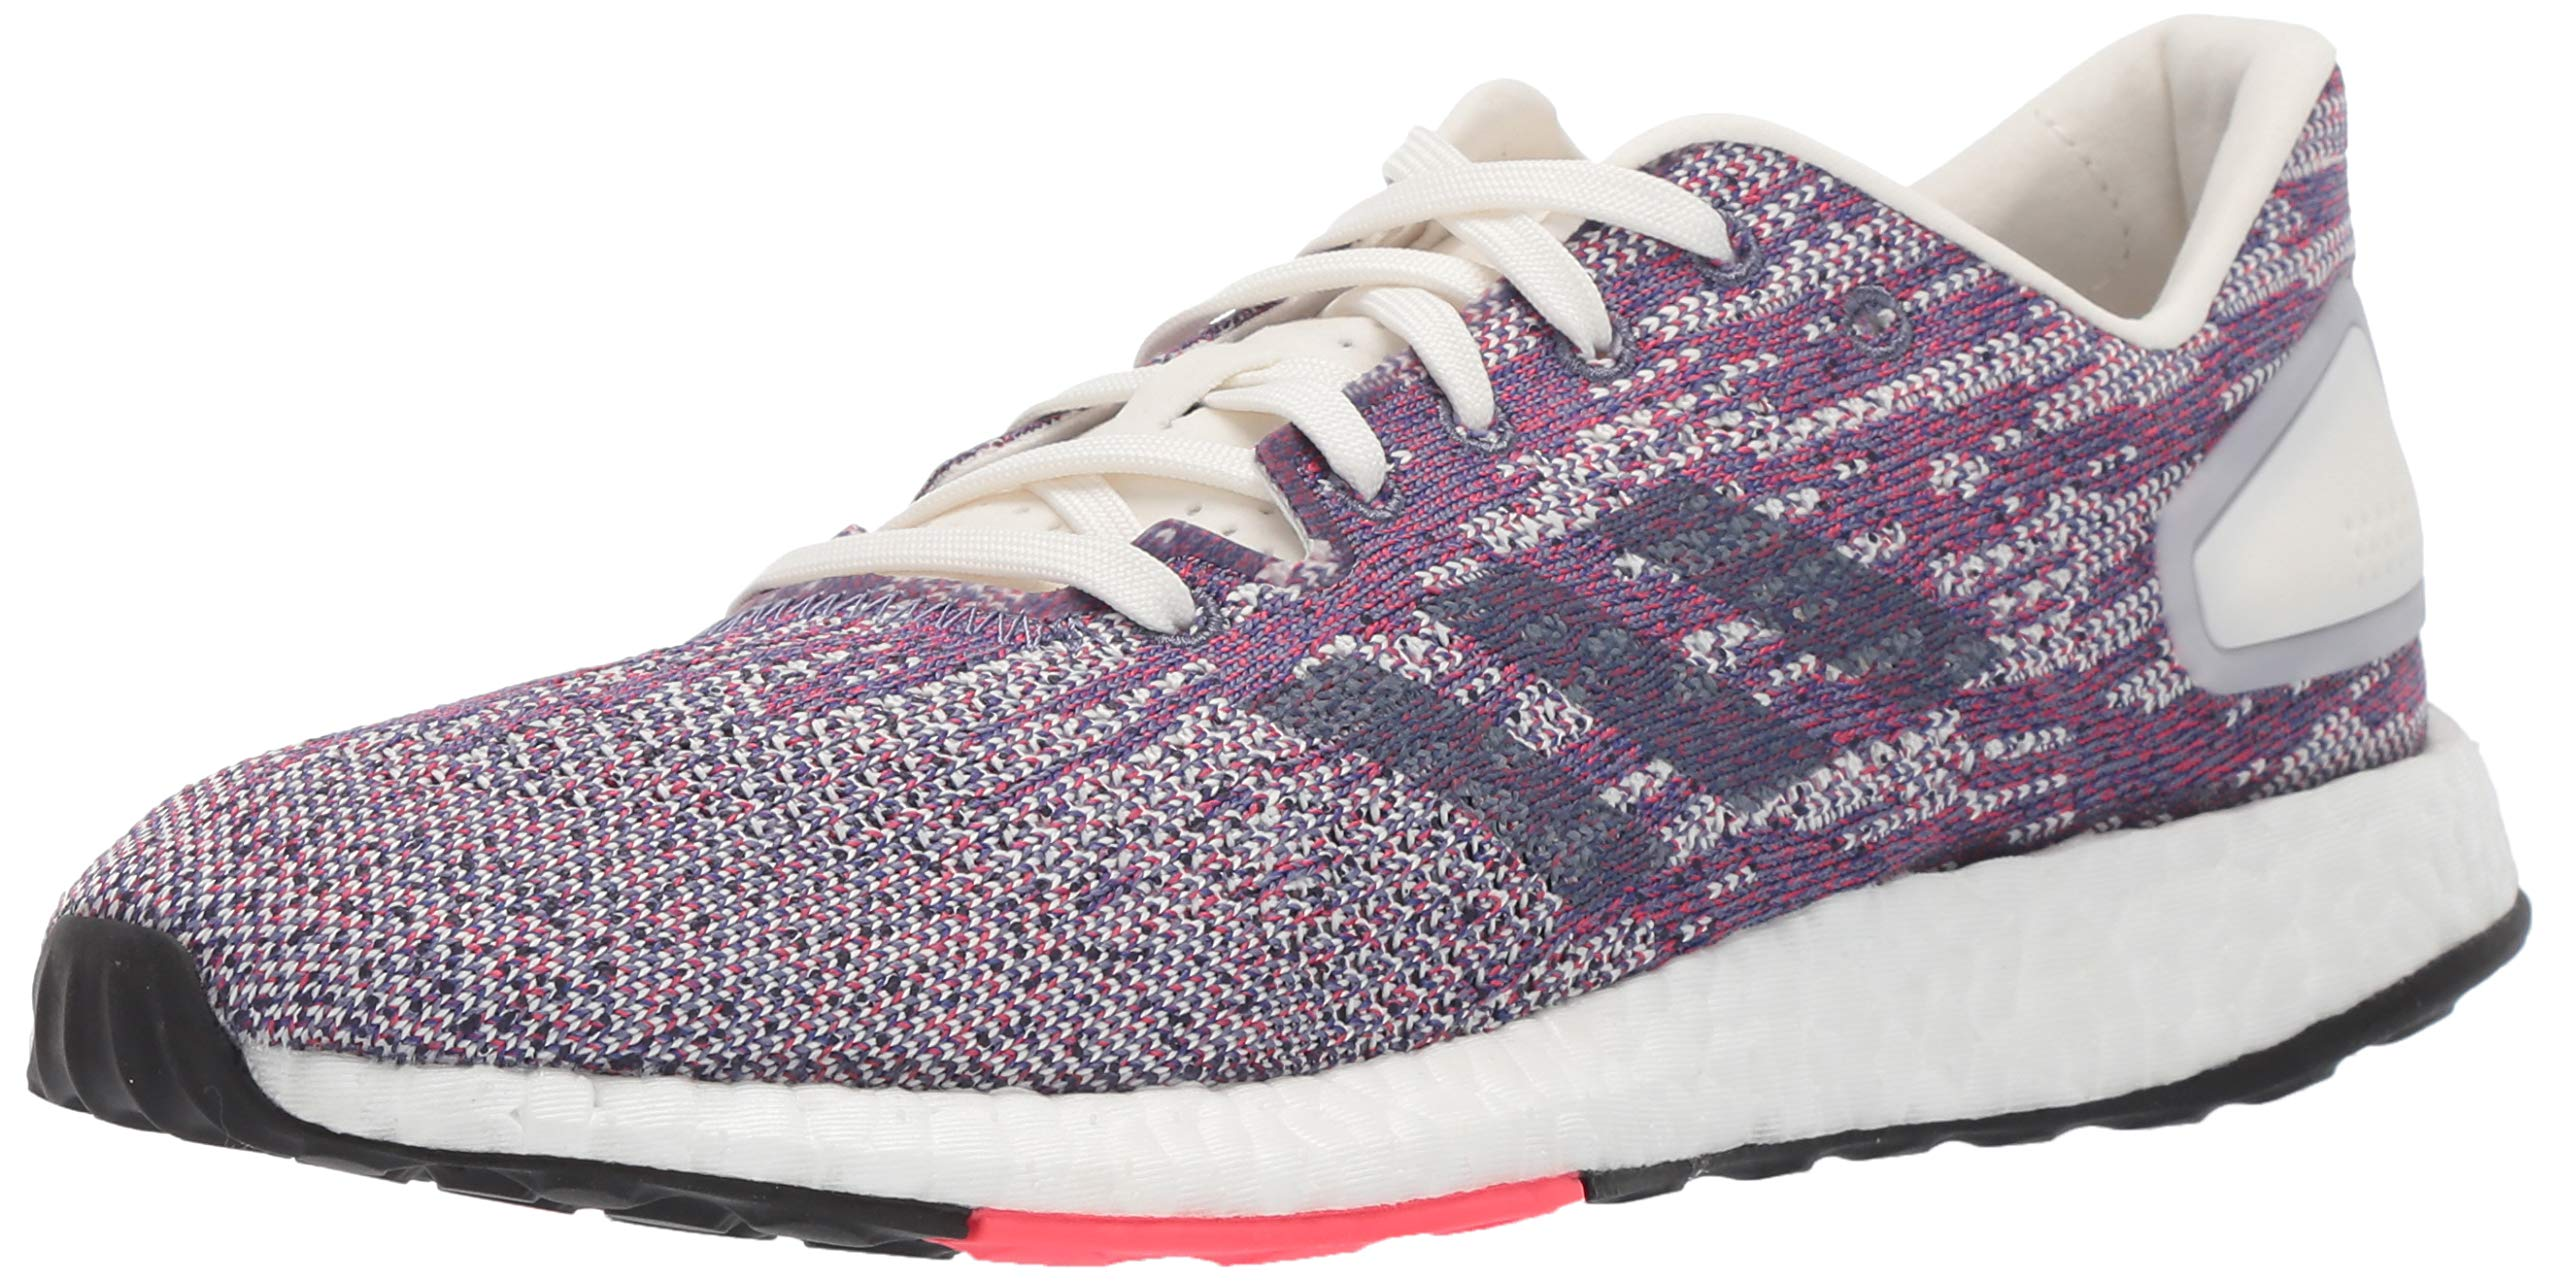 adidas Women's Pureboost DPR Running Shoes, Cloud White/raw Indigo/Shock red, 10 M US by adidas